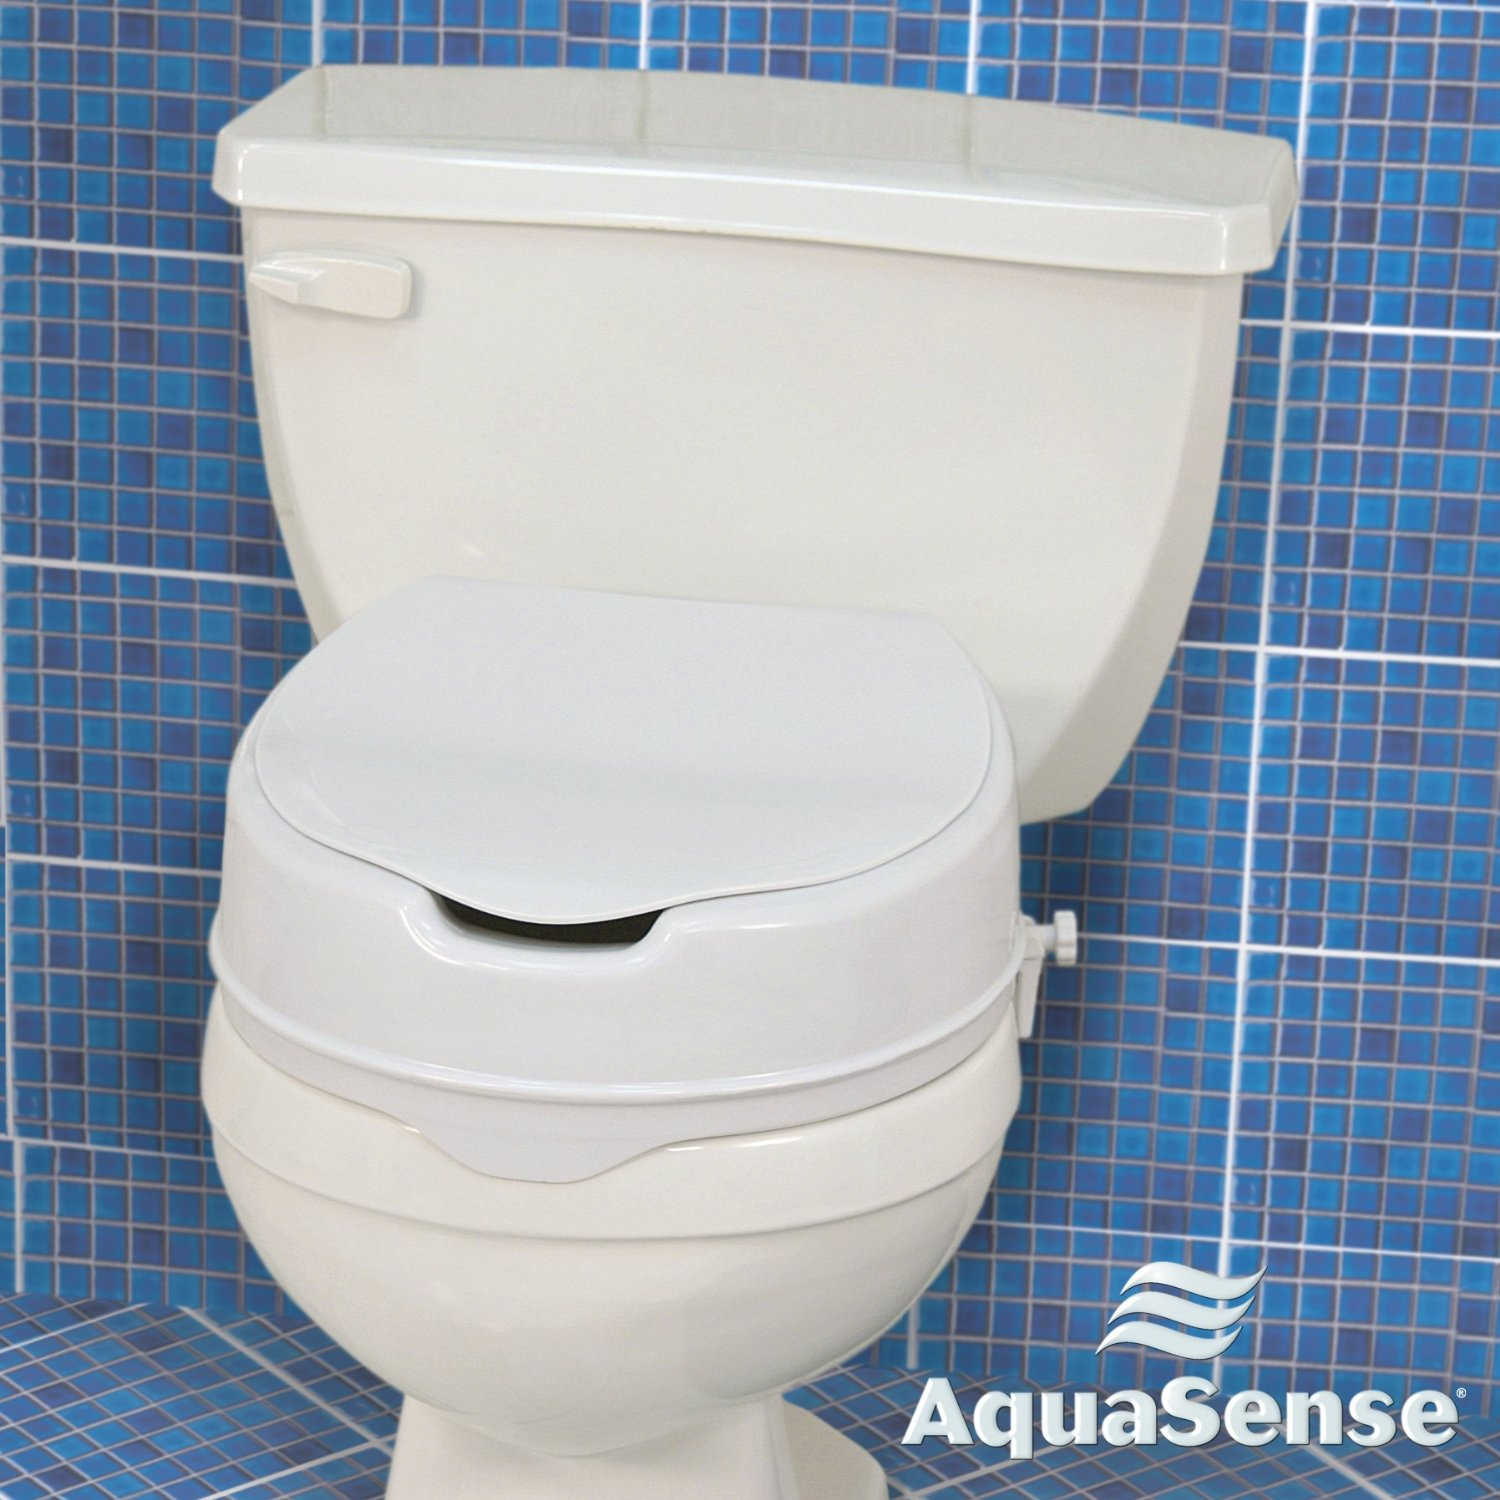 Senior Citizen Potty Chair Wood Arm With Cushion Raised High Toilet Seats For Elderly And Disabled Folks